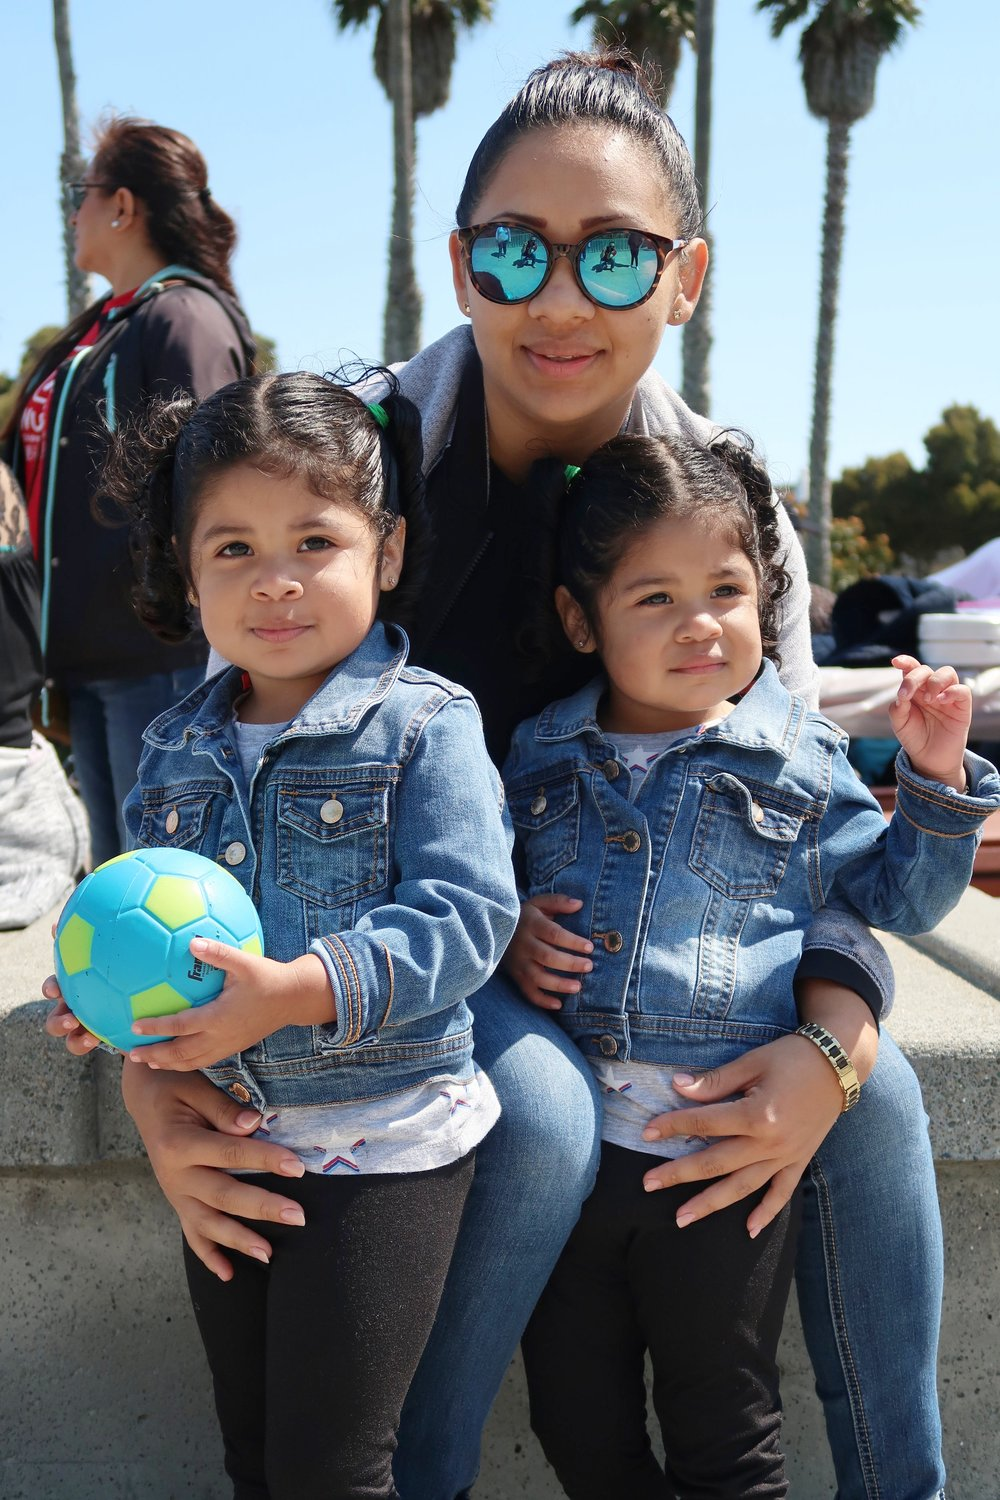 Eva and her daughters, Genesis and Litzy